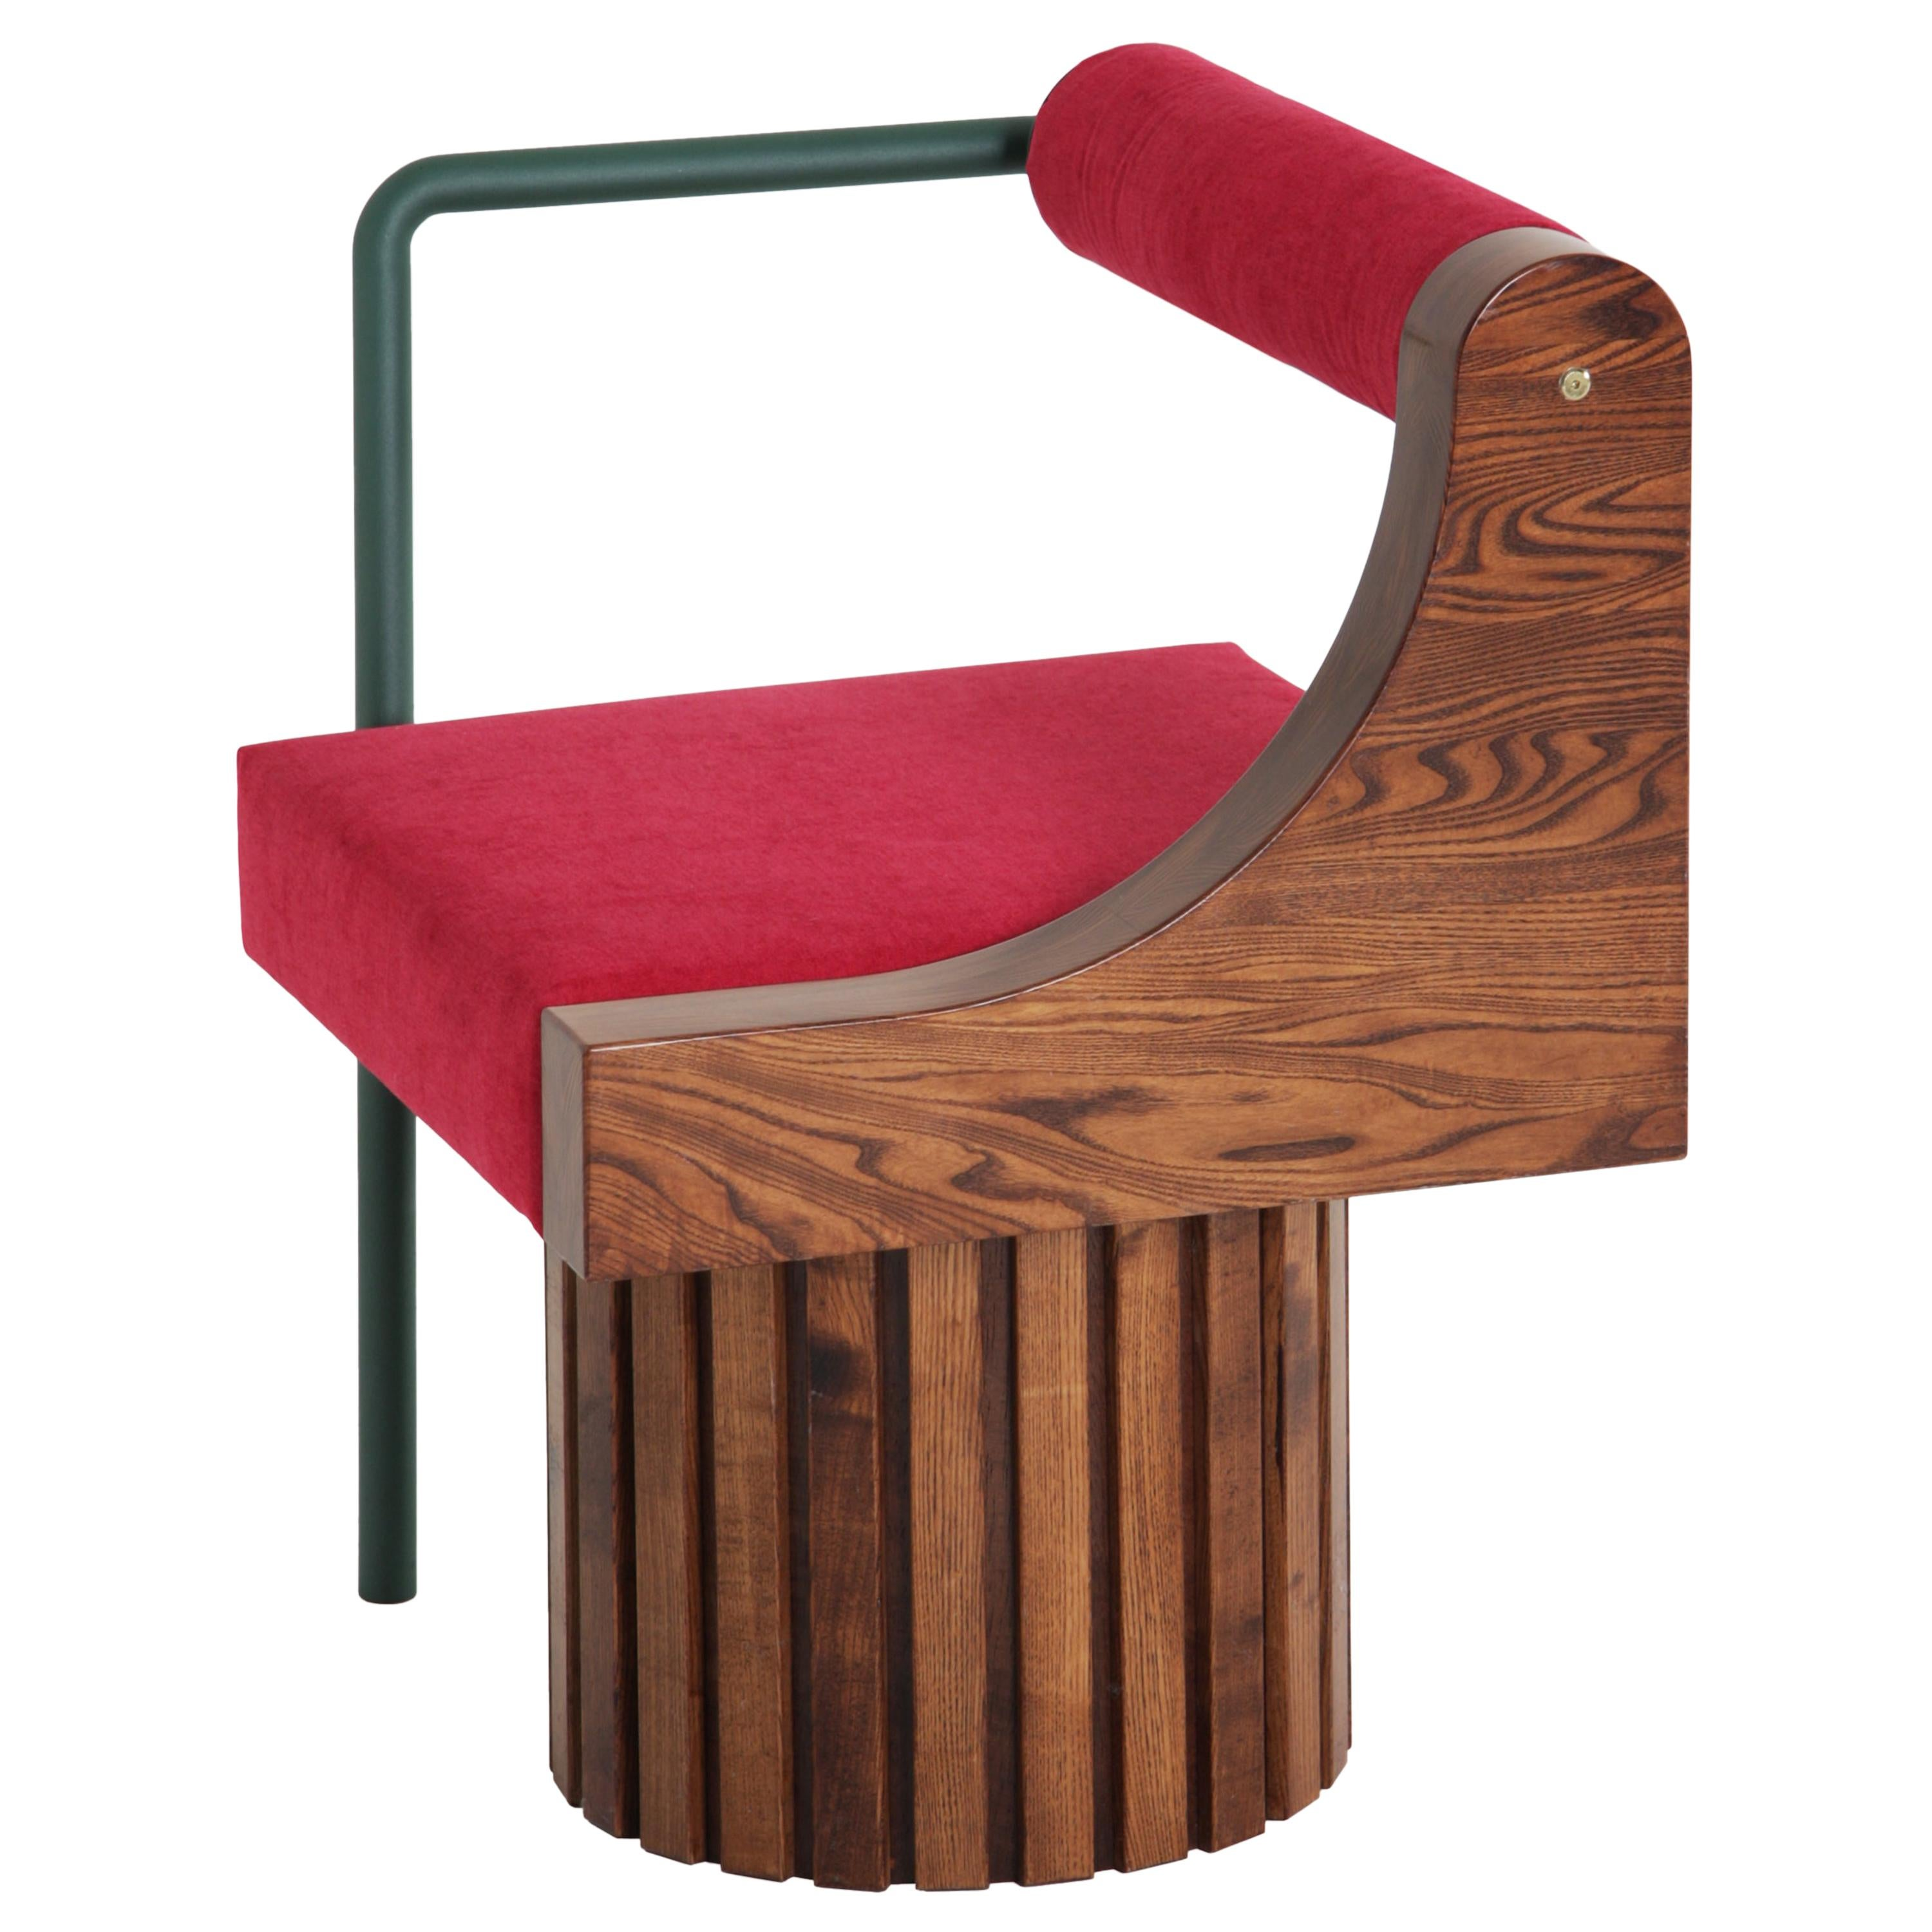 """Chair """"Normative Collection"""" Made of High Quality Wood and Steel Powder-Coated"""